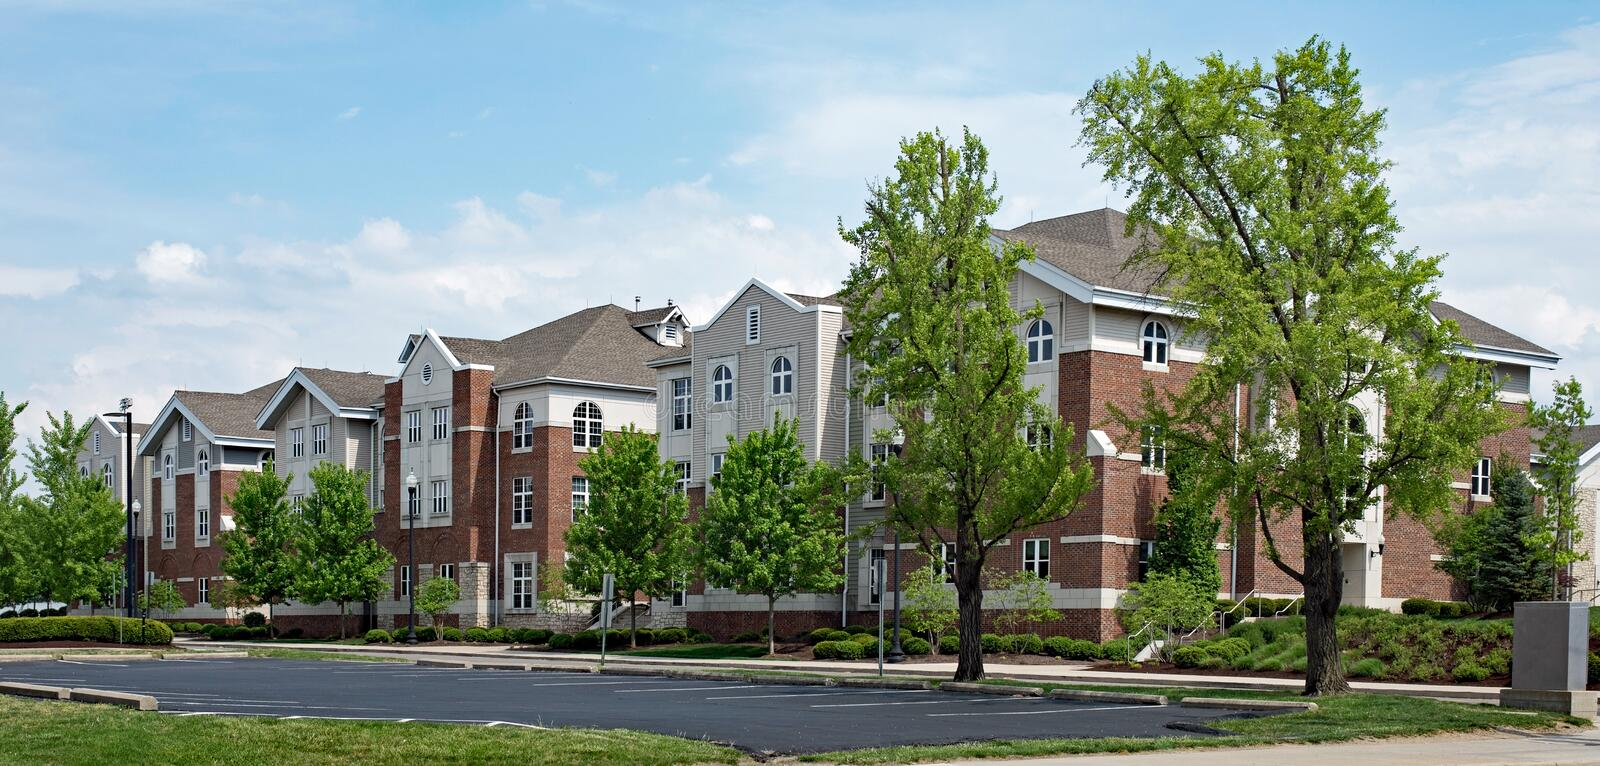 Upscale Red Brick and Tan Apartment Buildings royalty free stock images